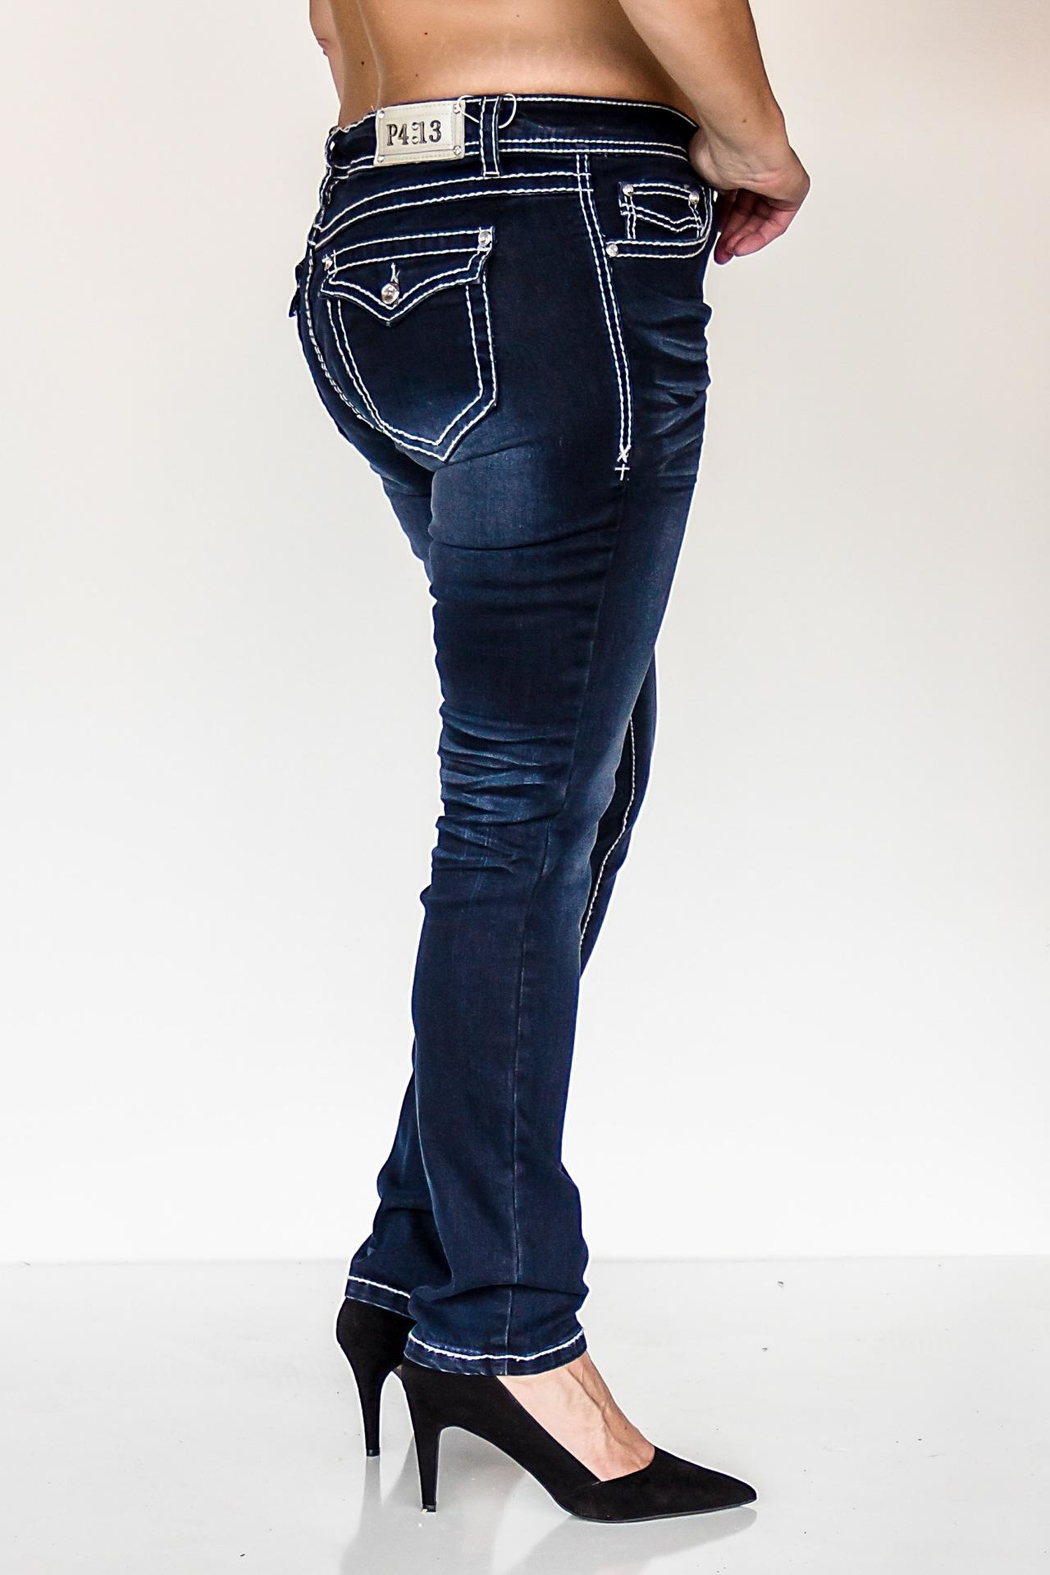 KITTY COUTURE  P413 Denim Jeans - Front Full Image